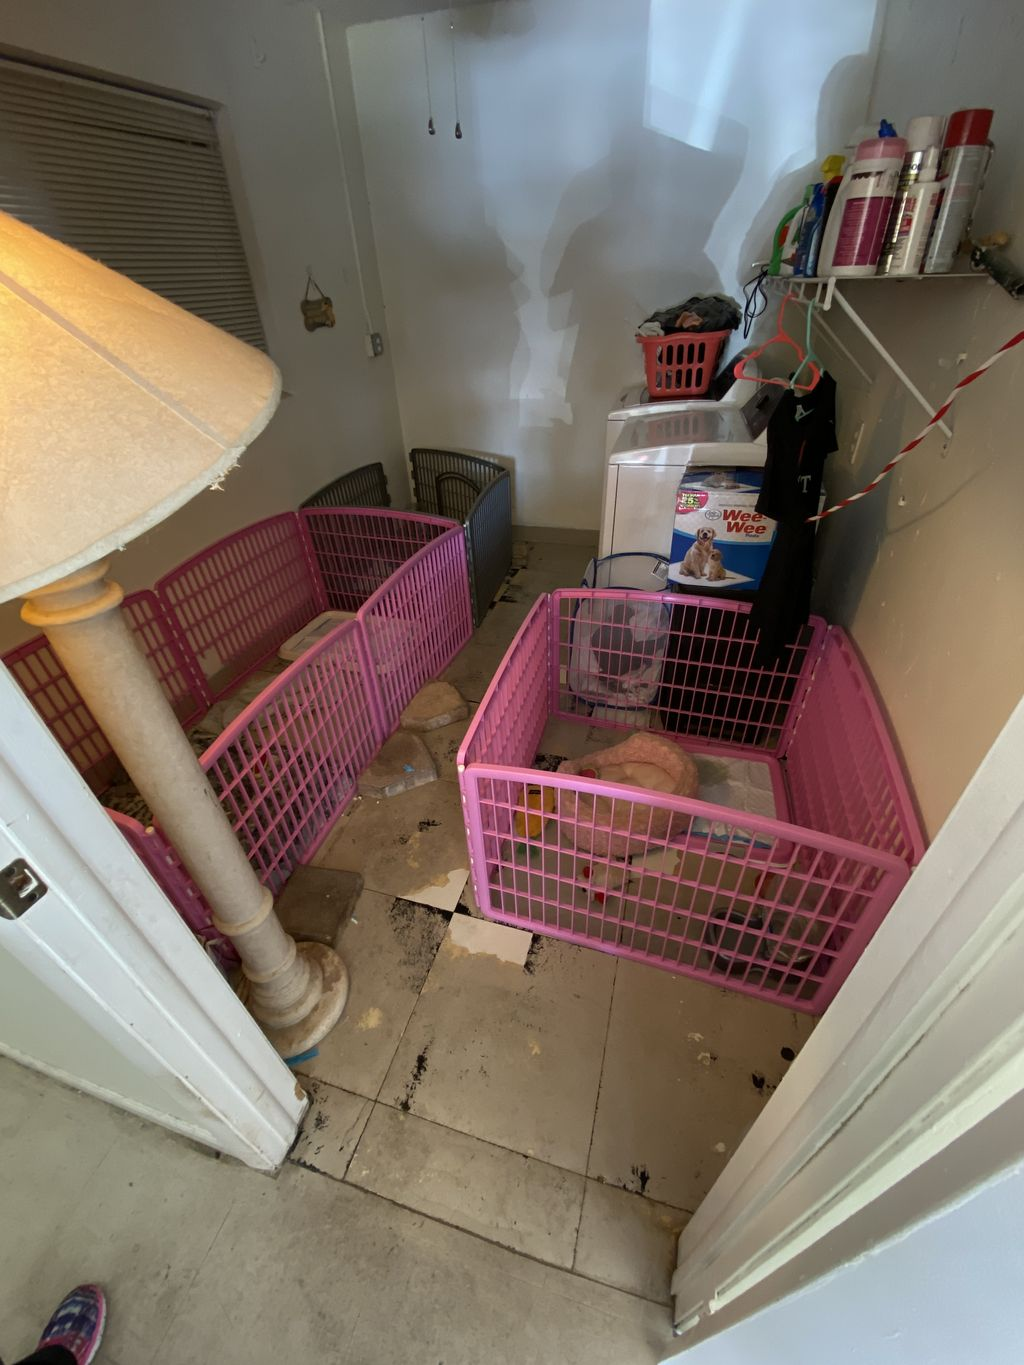 Converted laundry room to puppy kennel